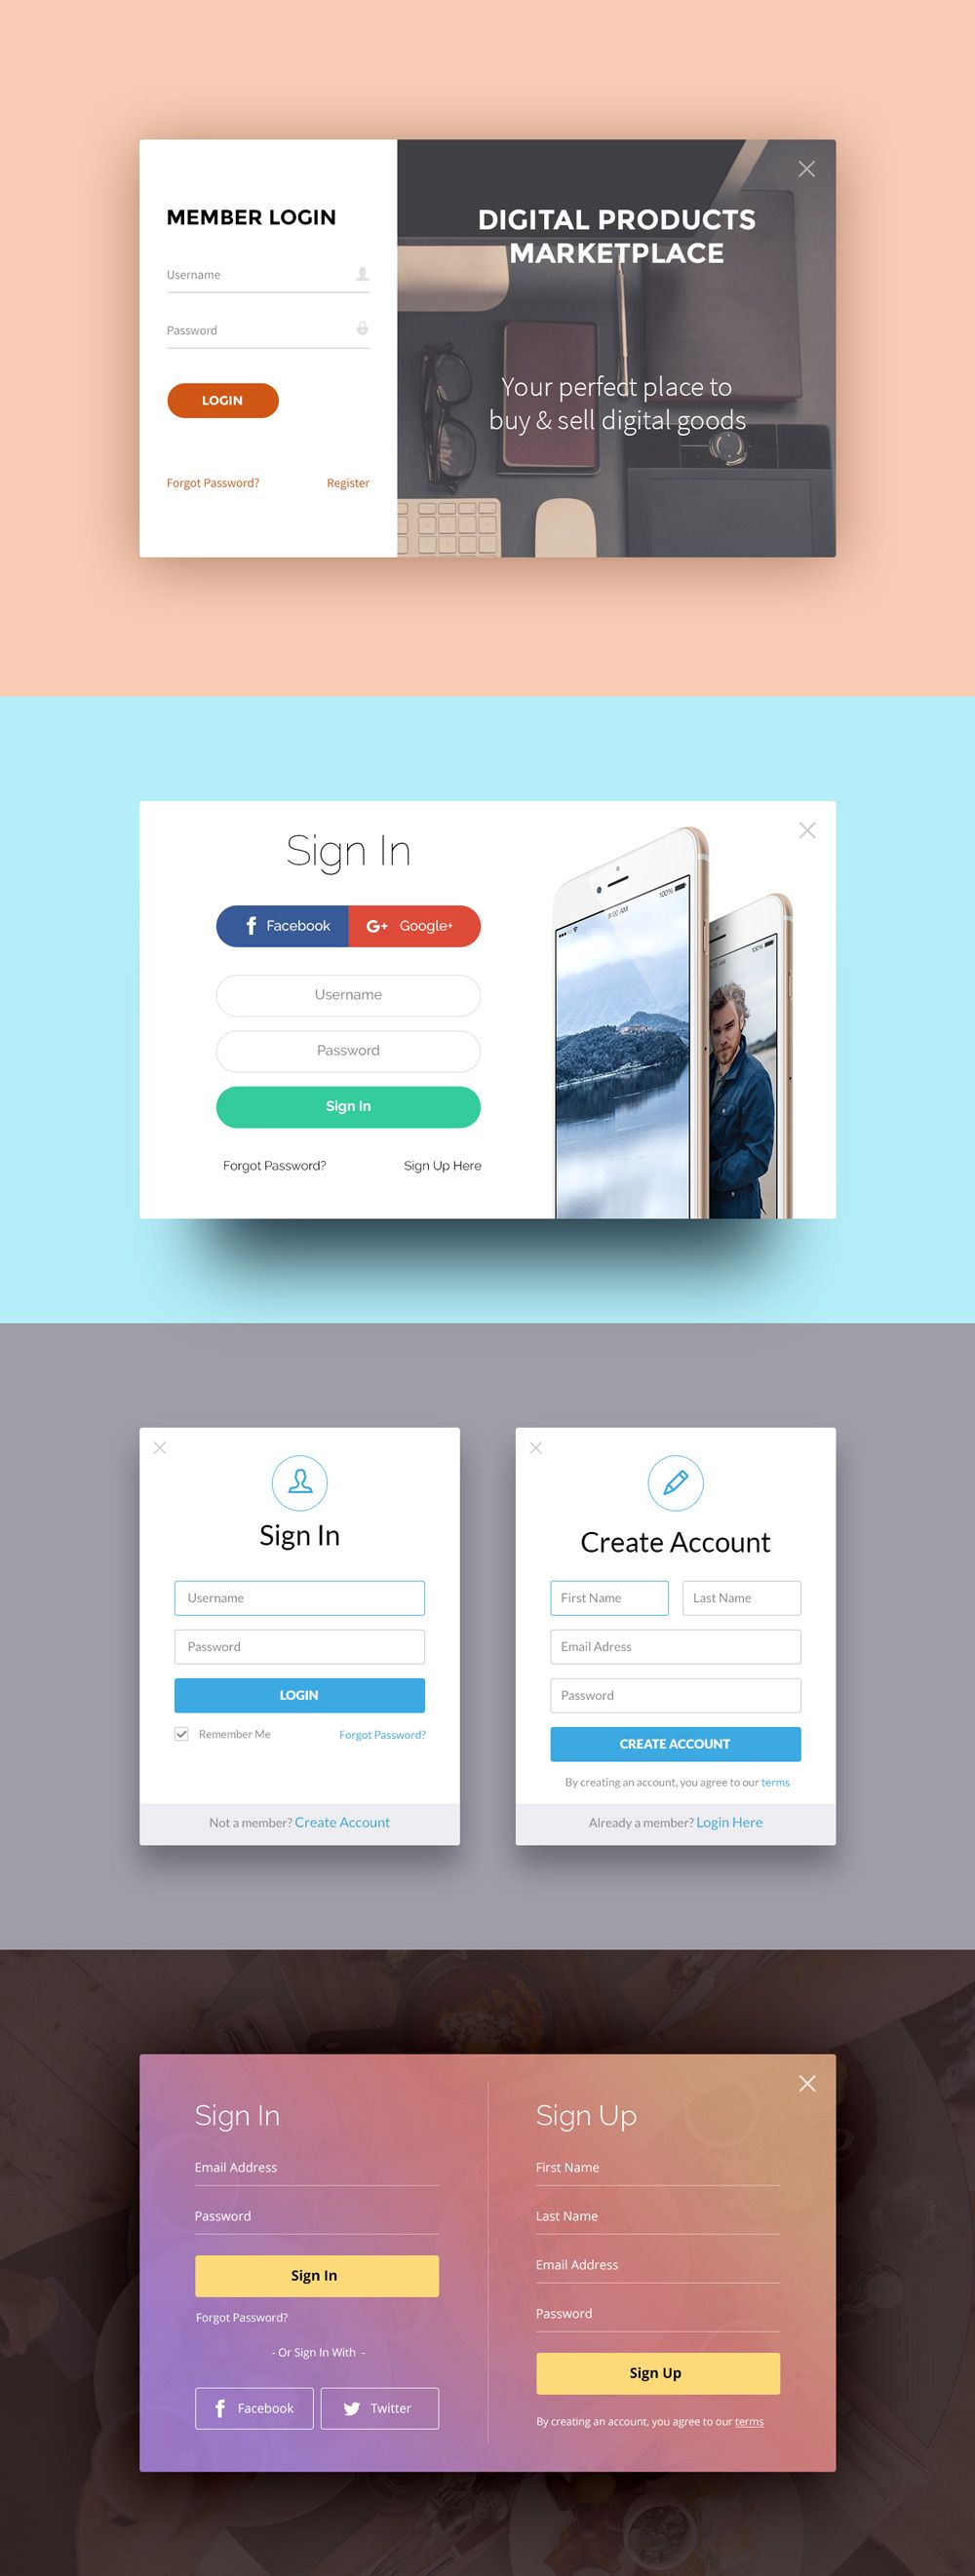 here s a cool set of sign up and login psd forms which include here s a cool set of sign up and login psd forms which include modern interfaces for sign in and sign up forms don t hesitate it s to